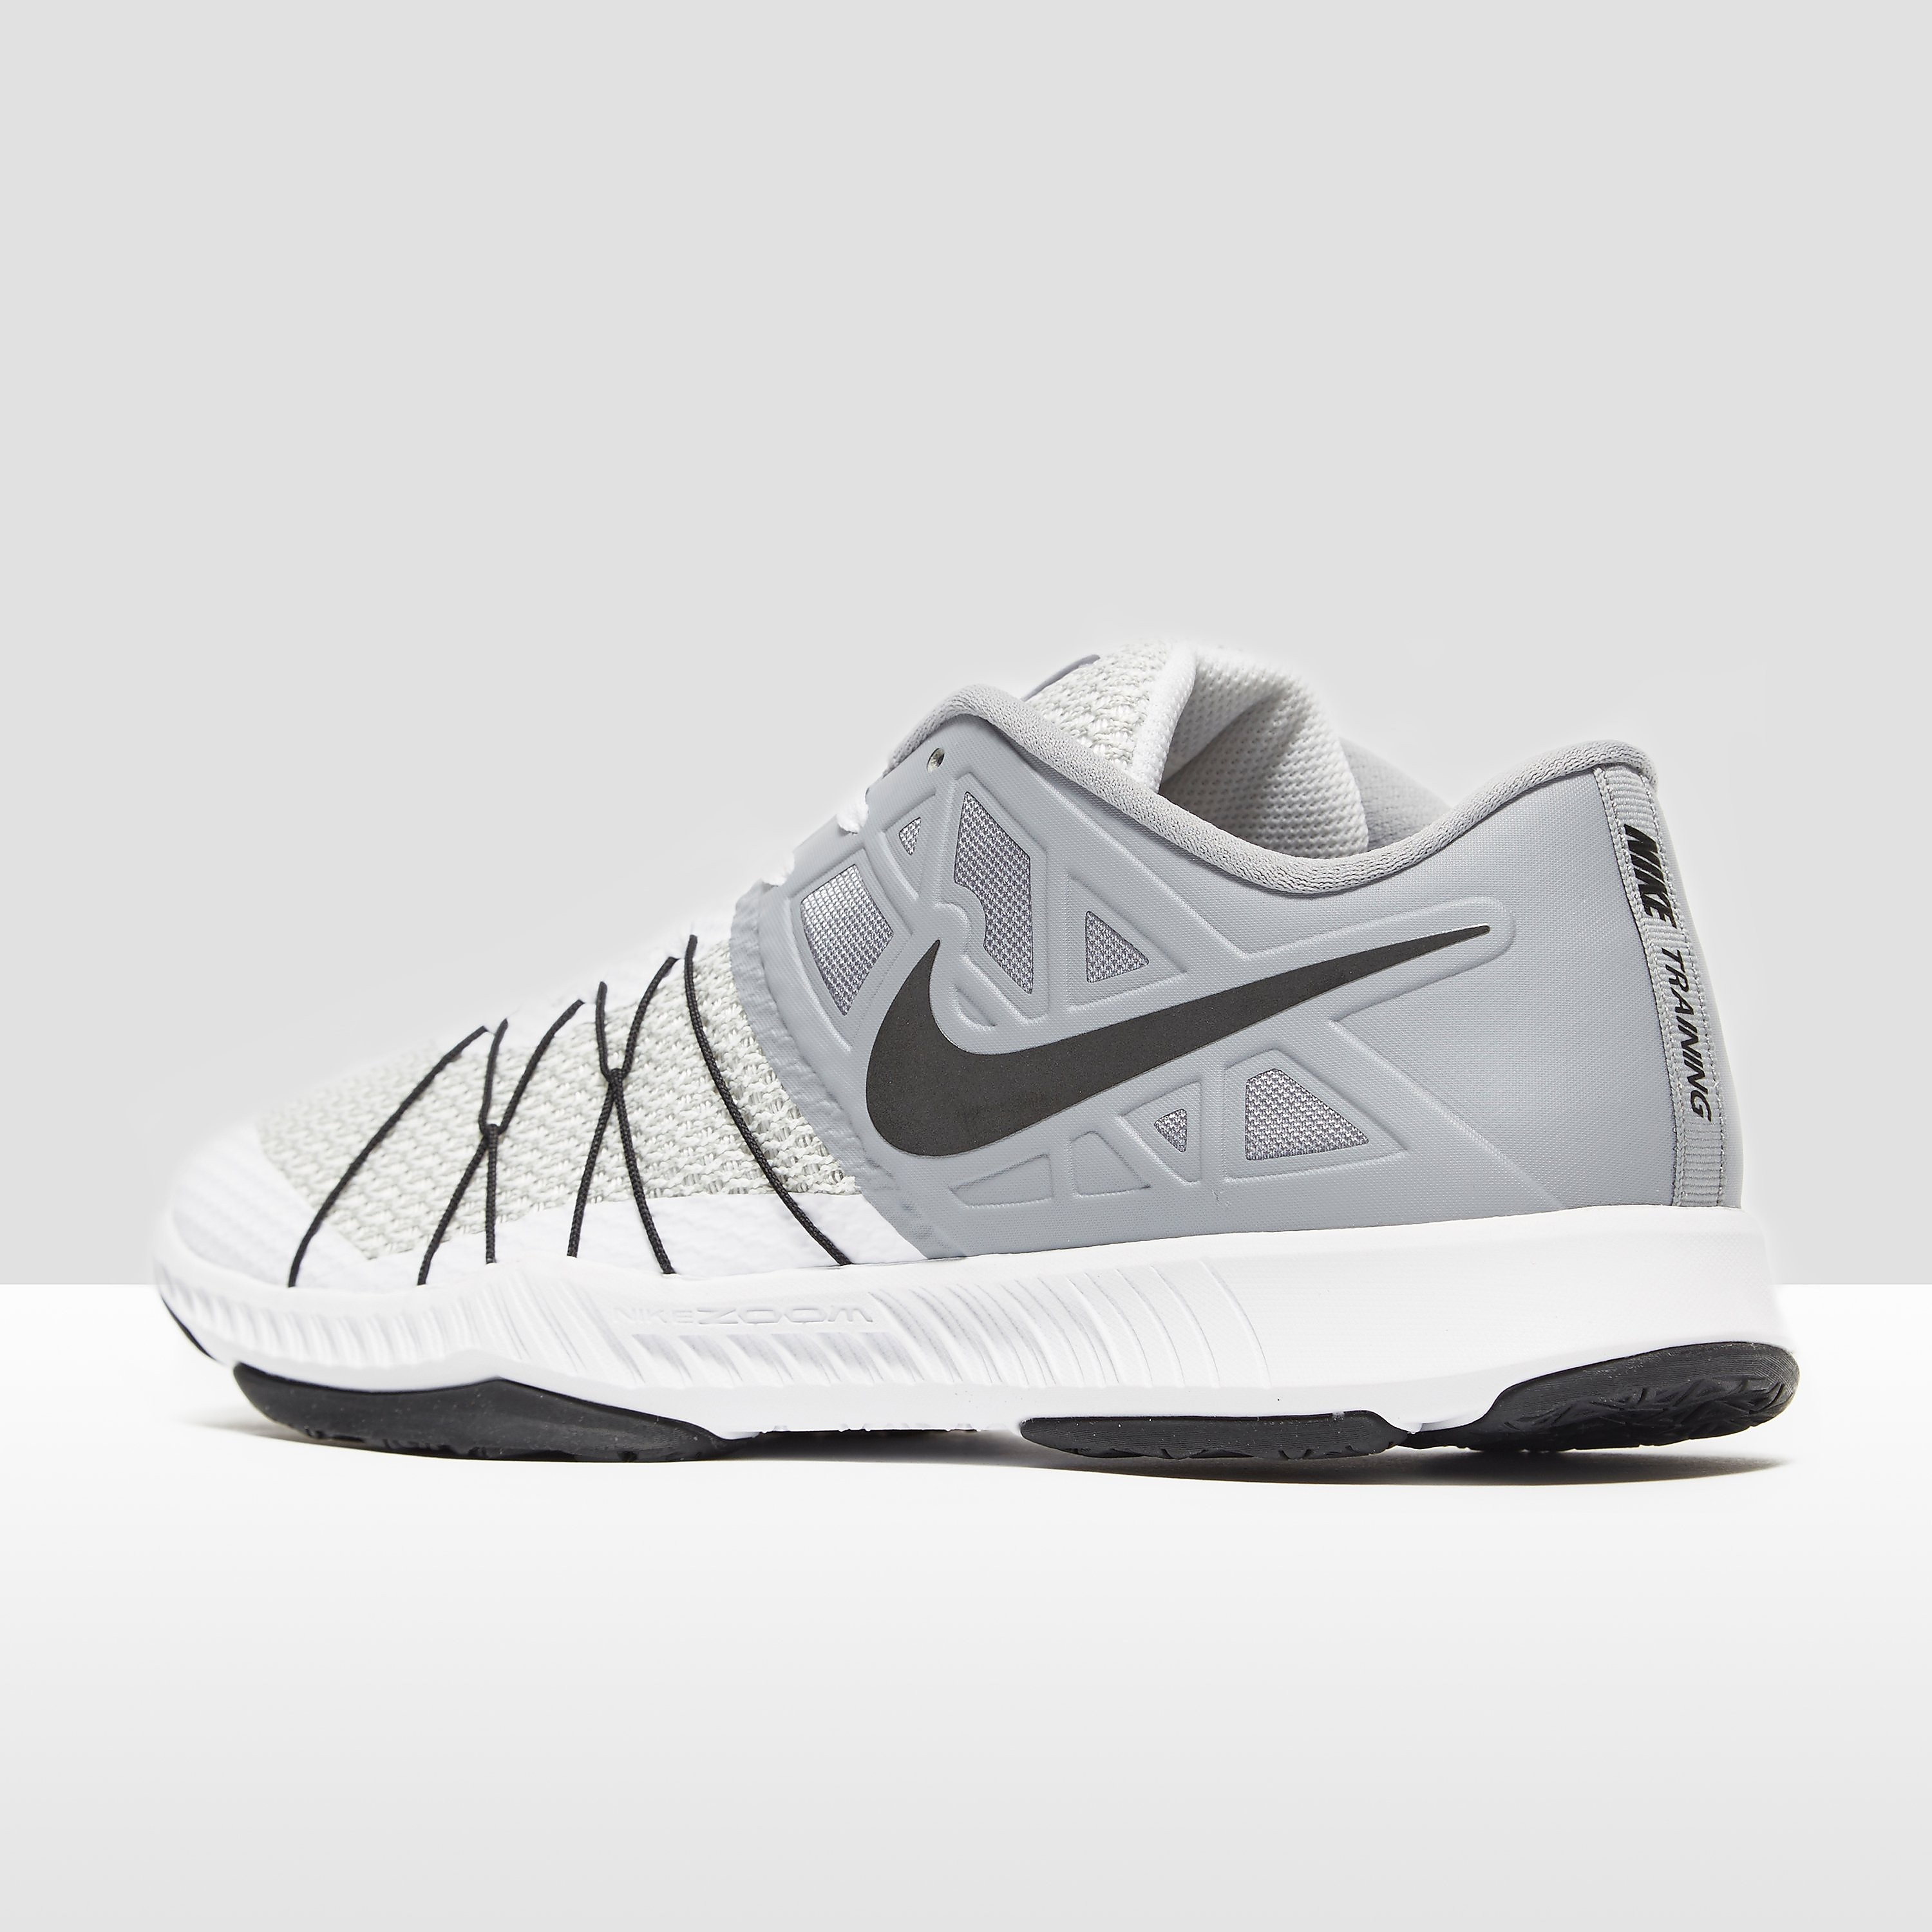 Nike Zoom Incredibly Fast Men's Training Shoe